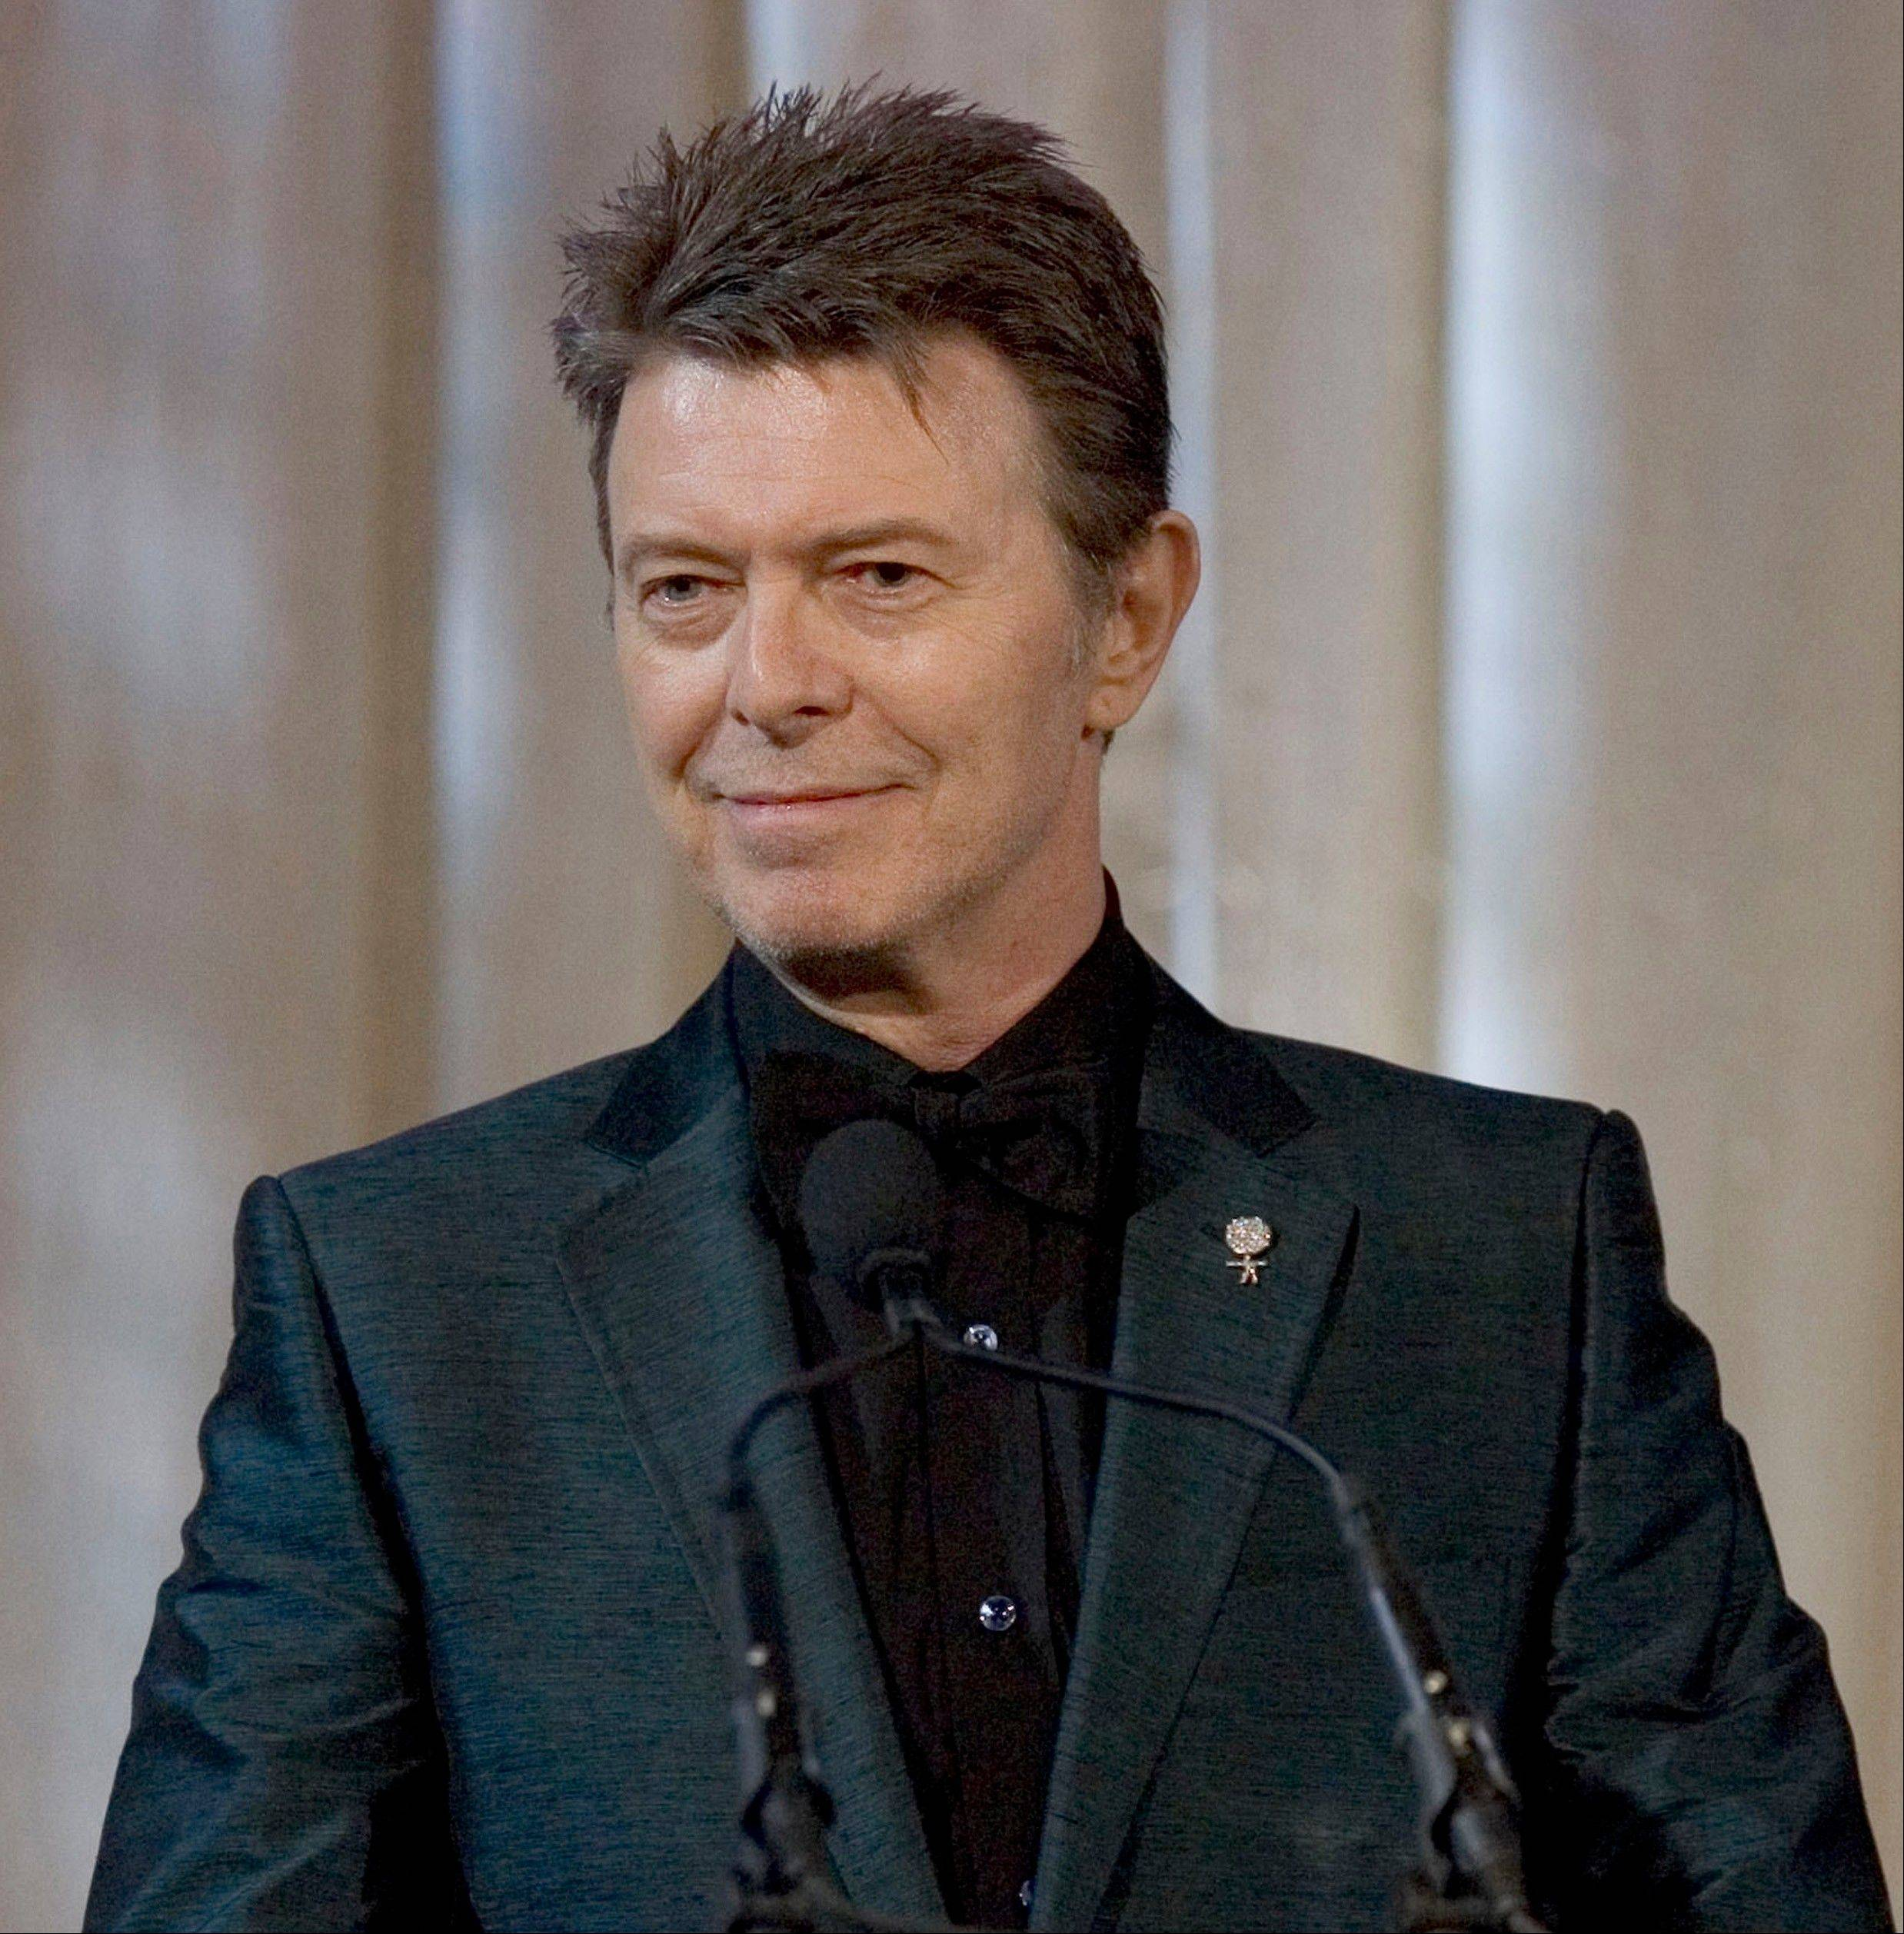 British singer David Bowie announced Tuesday on his 66th birthday, that he has released his first song in 10 years titled �Where Are We Now?� A new album, �The Next Day,� will be out in March.